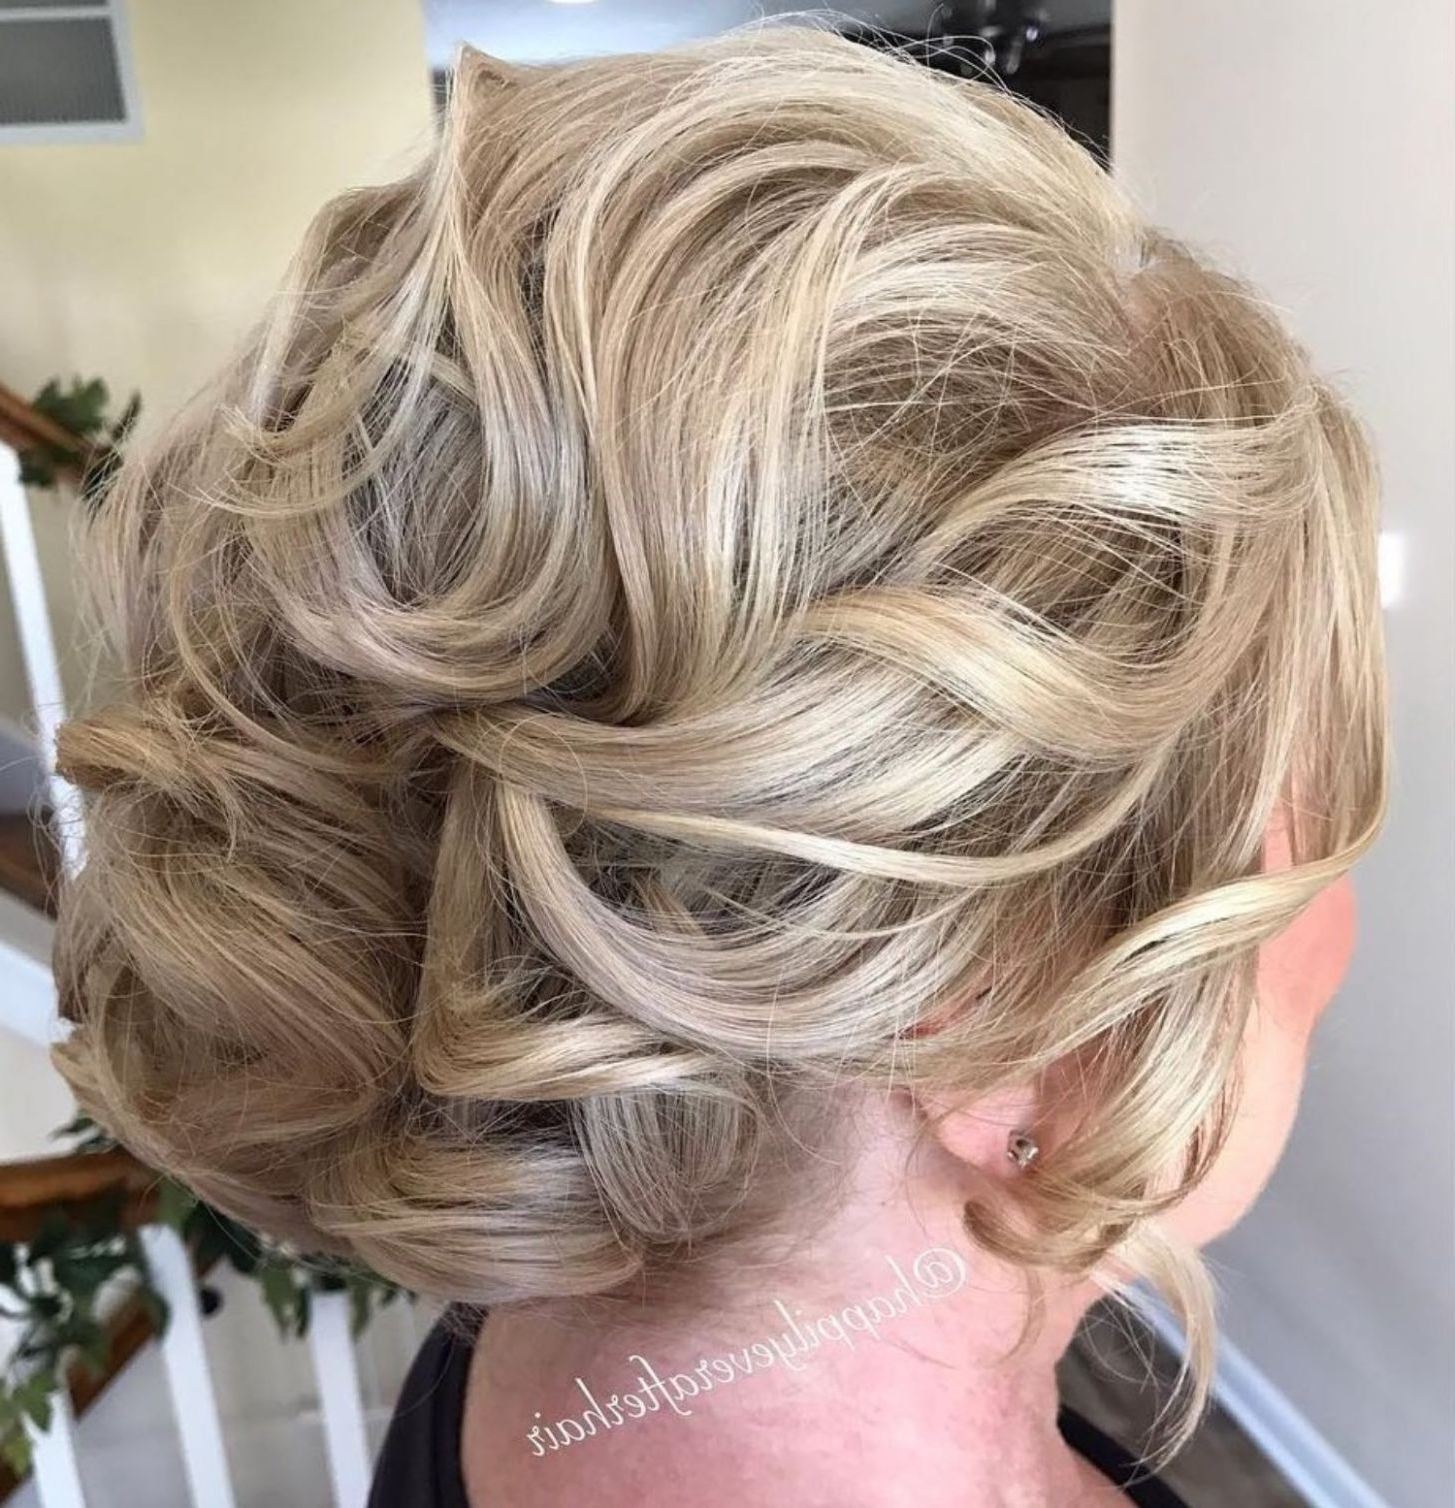 50 Ravishing Mother Of The Bride Hairstyles In 2019 (Gallery 5 of 20)